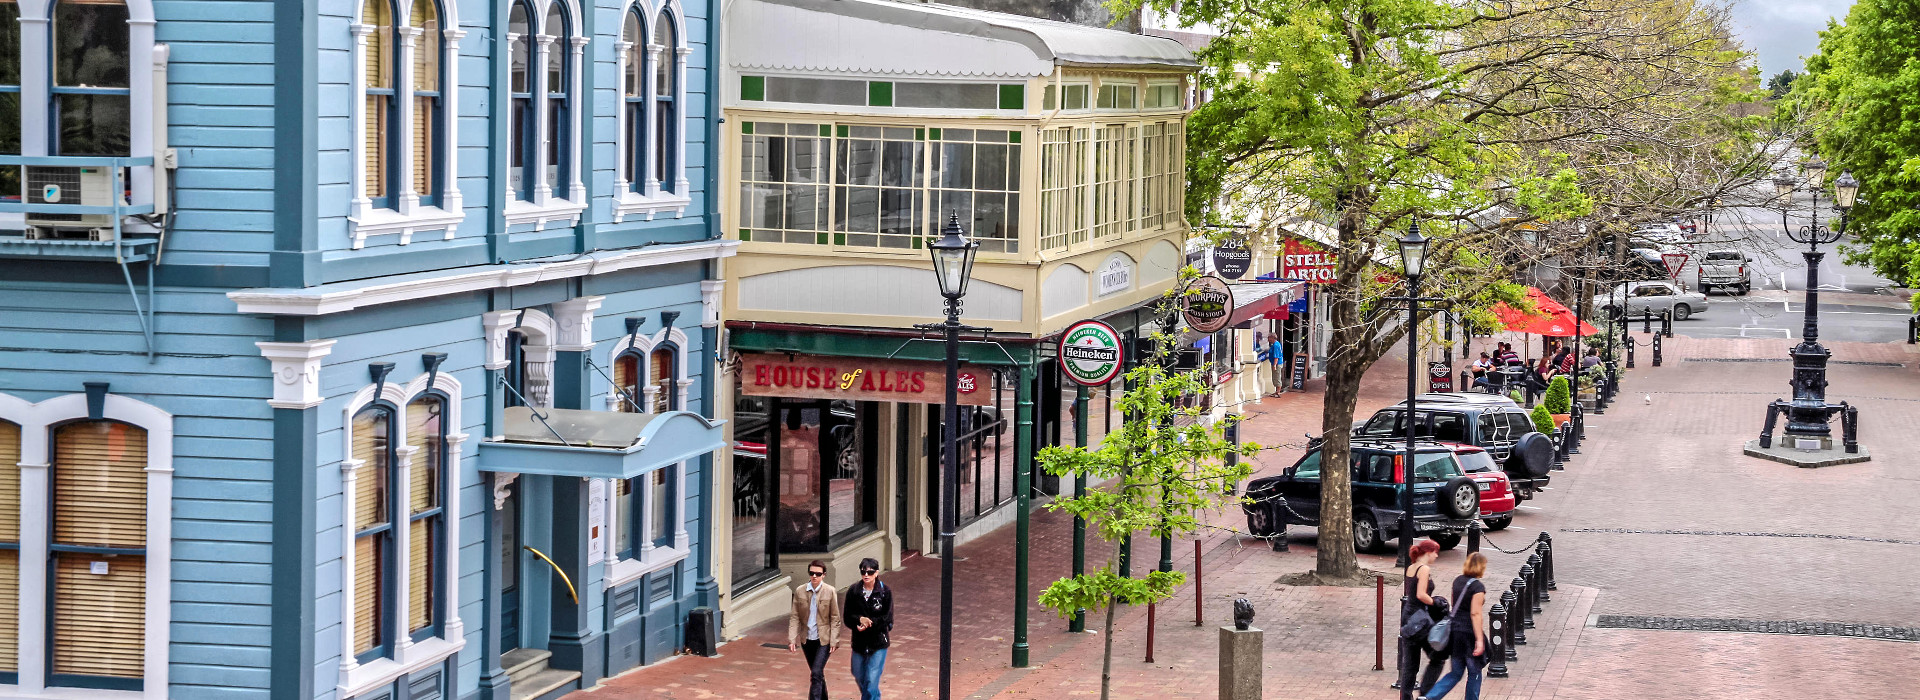 Historic Nelson viewed from Cathedral steps